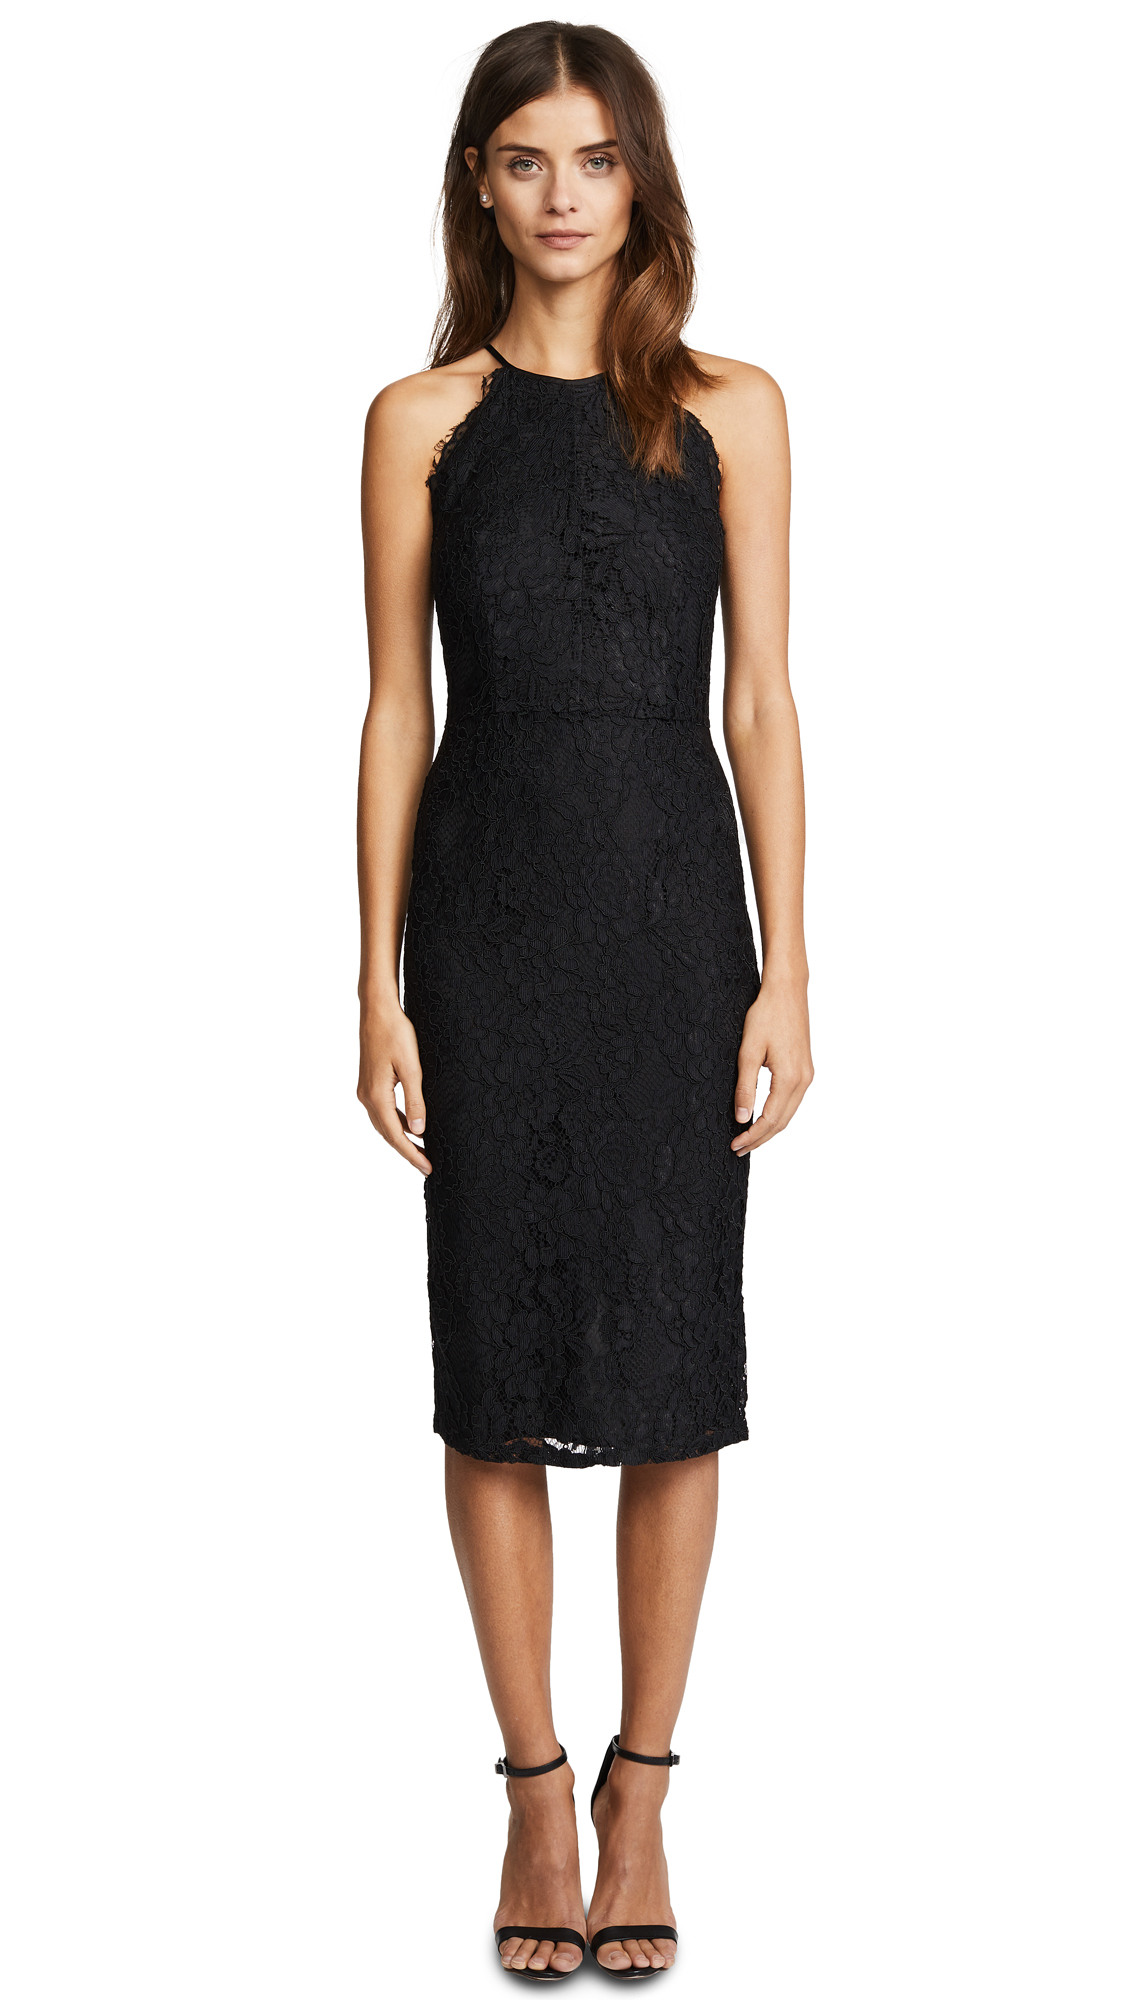 Yumi Kim Save the Date Dress - Black